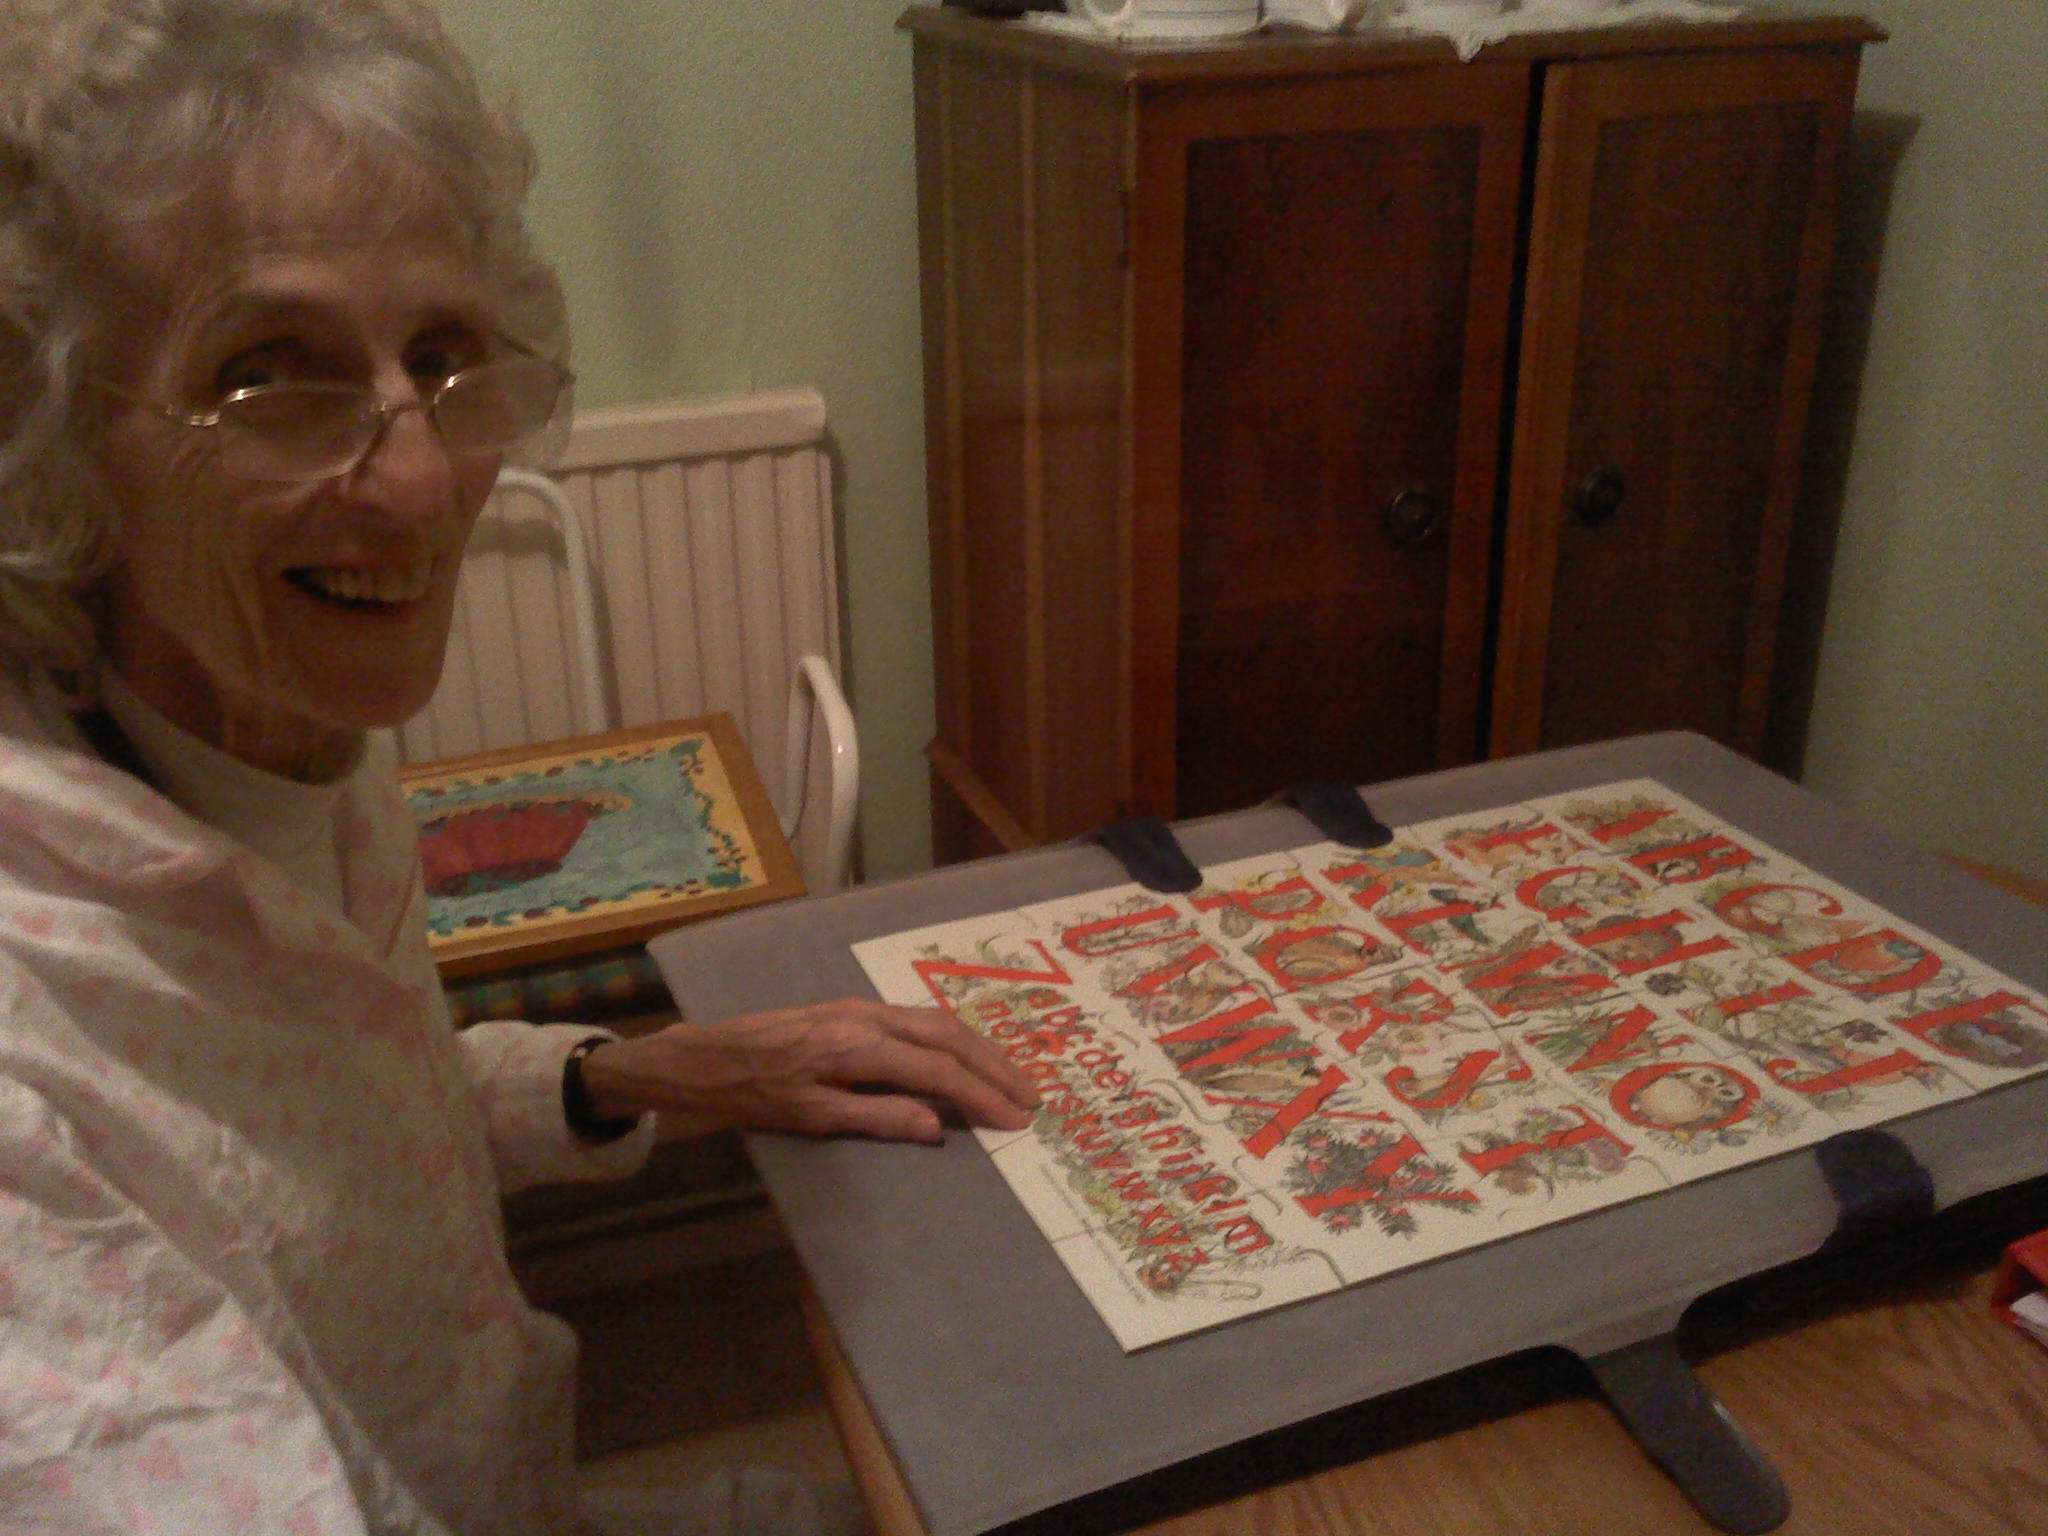 Home Instead St. Albans client Mrs Britton with the completed jigsaw her CAREgiver Althea Burrowes helped her organize